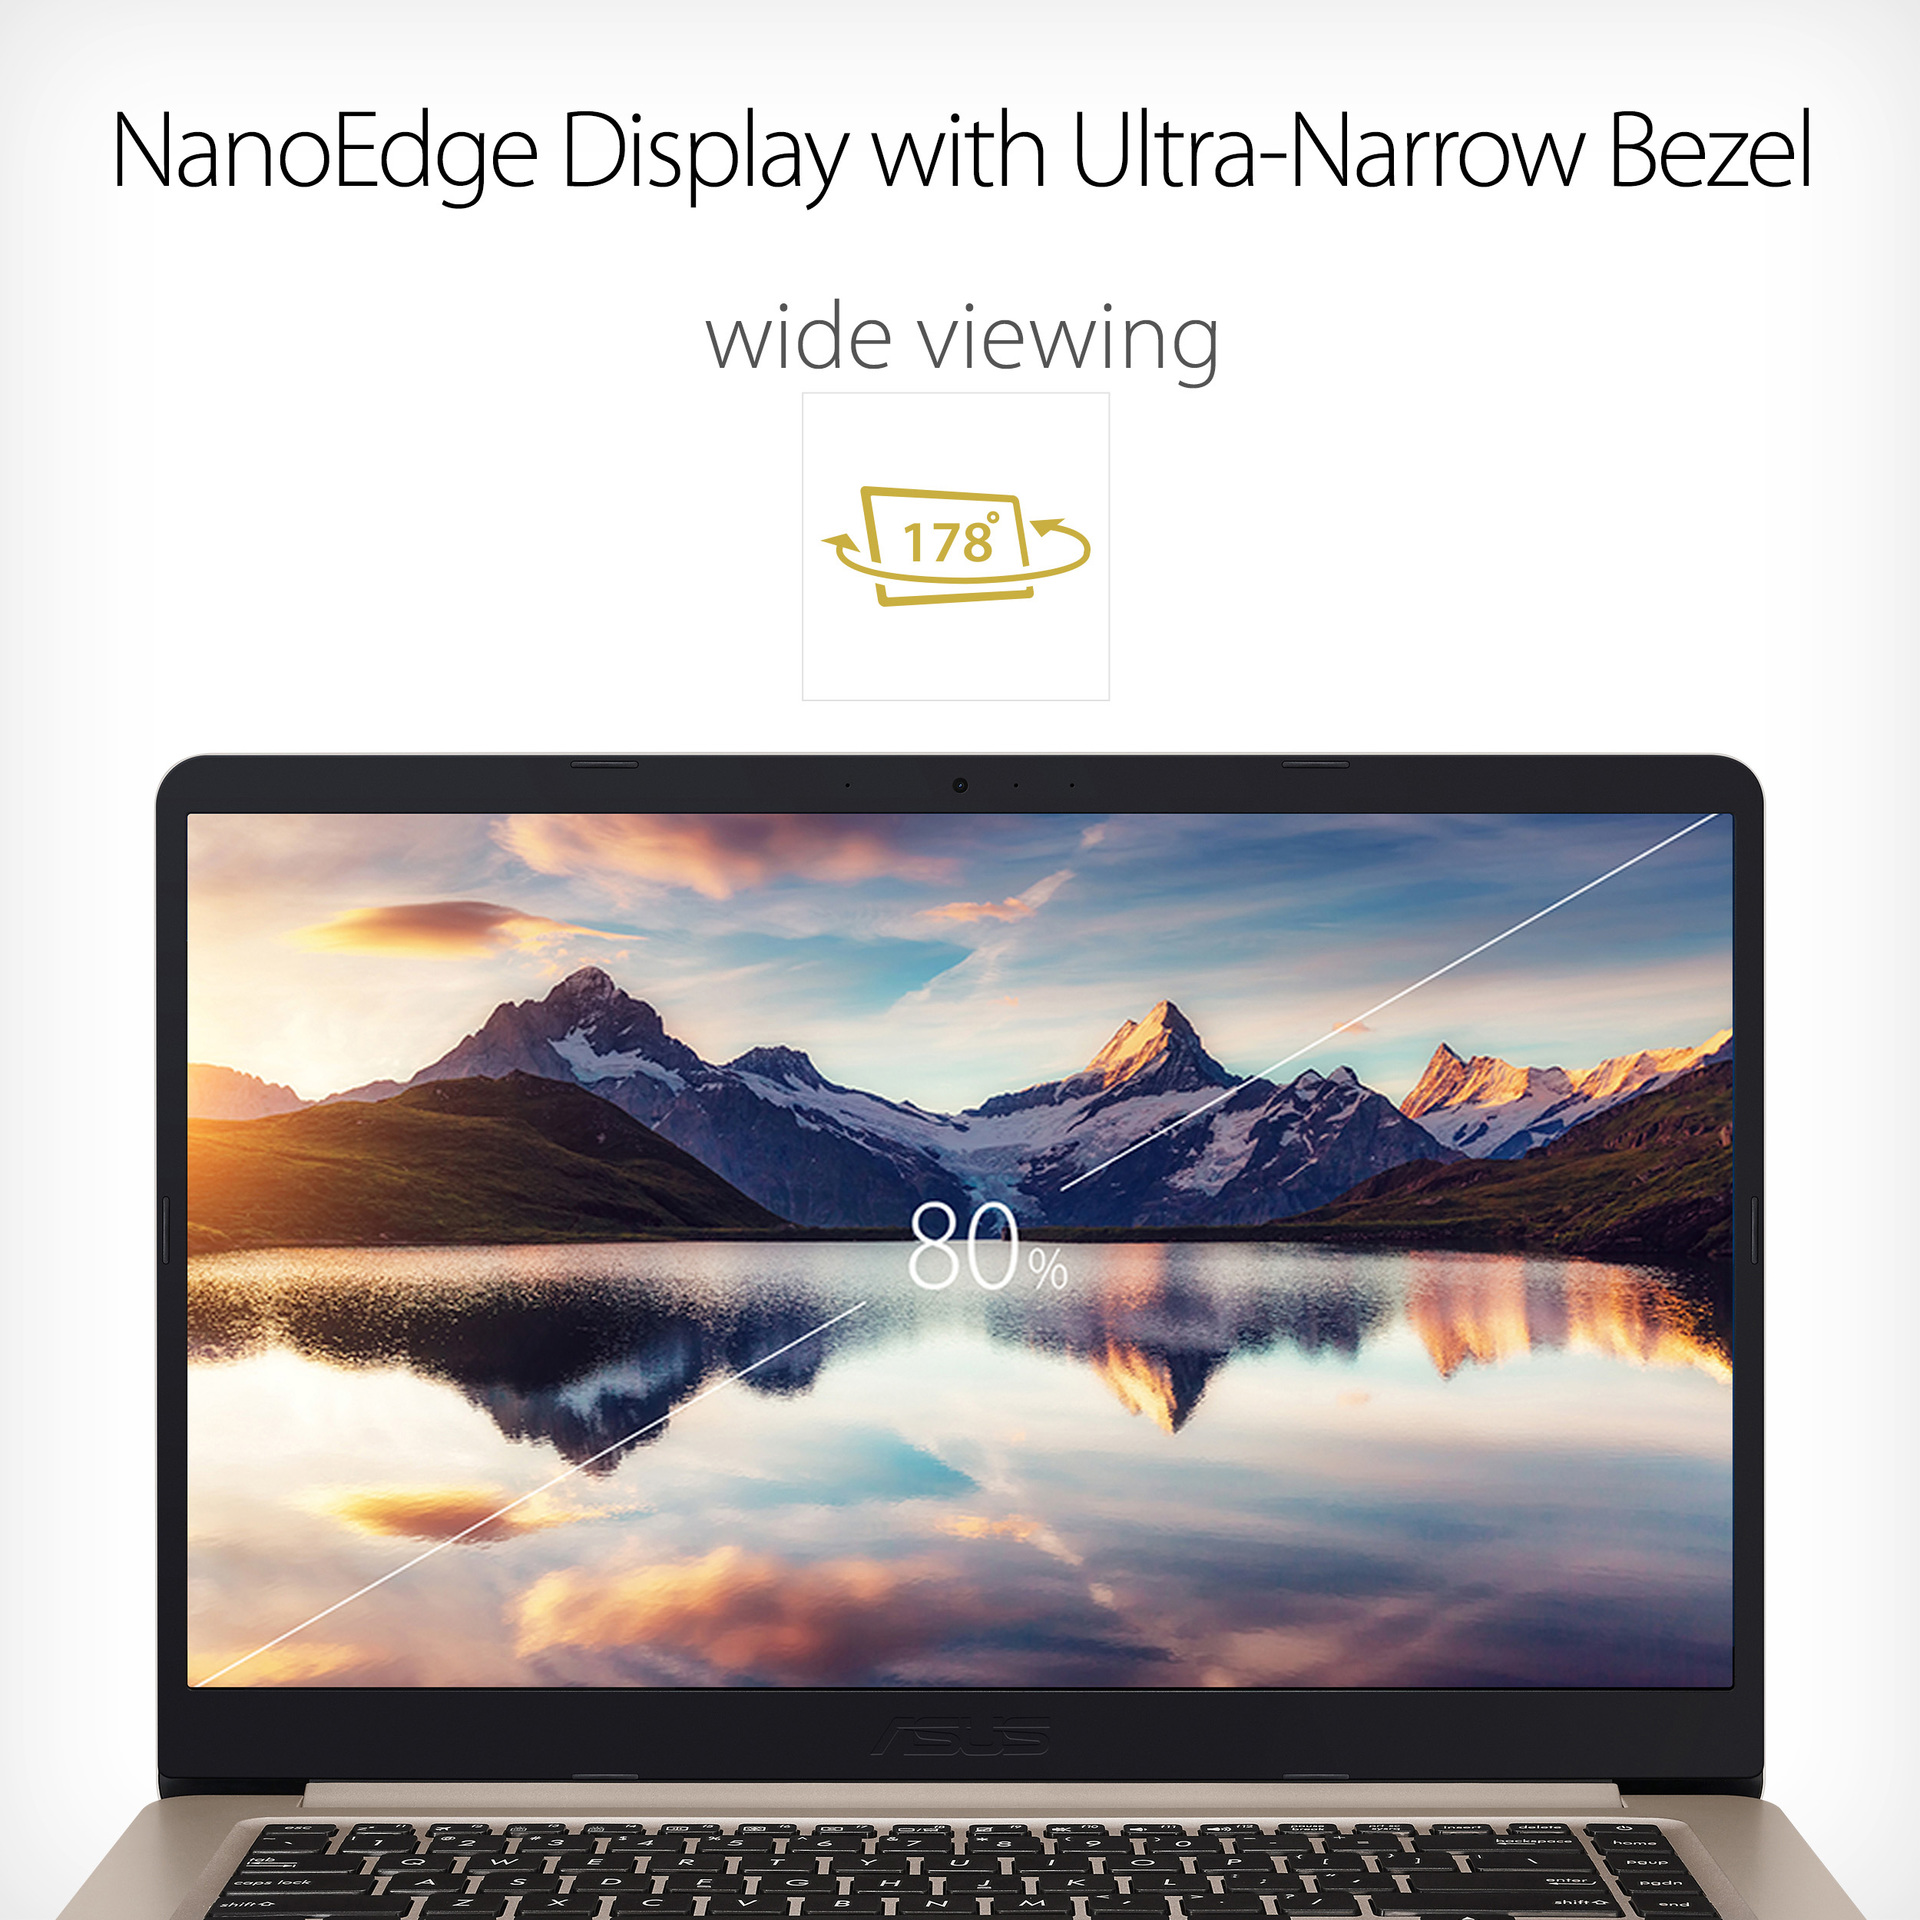 NanoEdge Display with Ultra Narrow Bezel